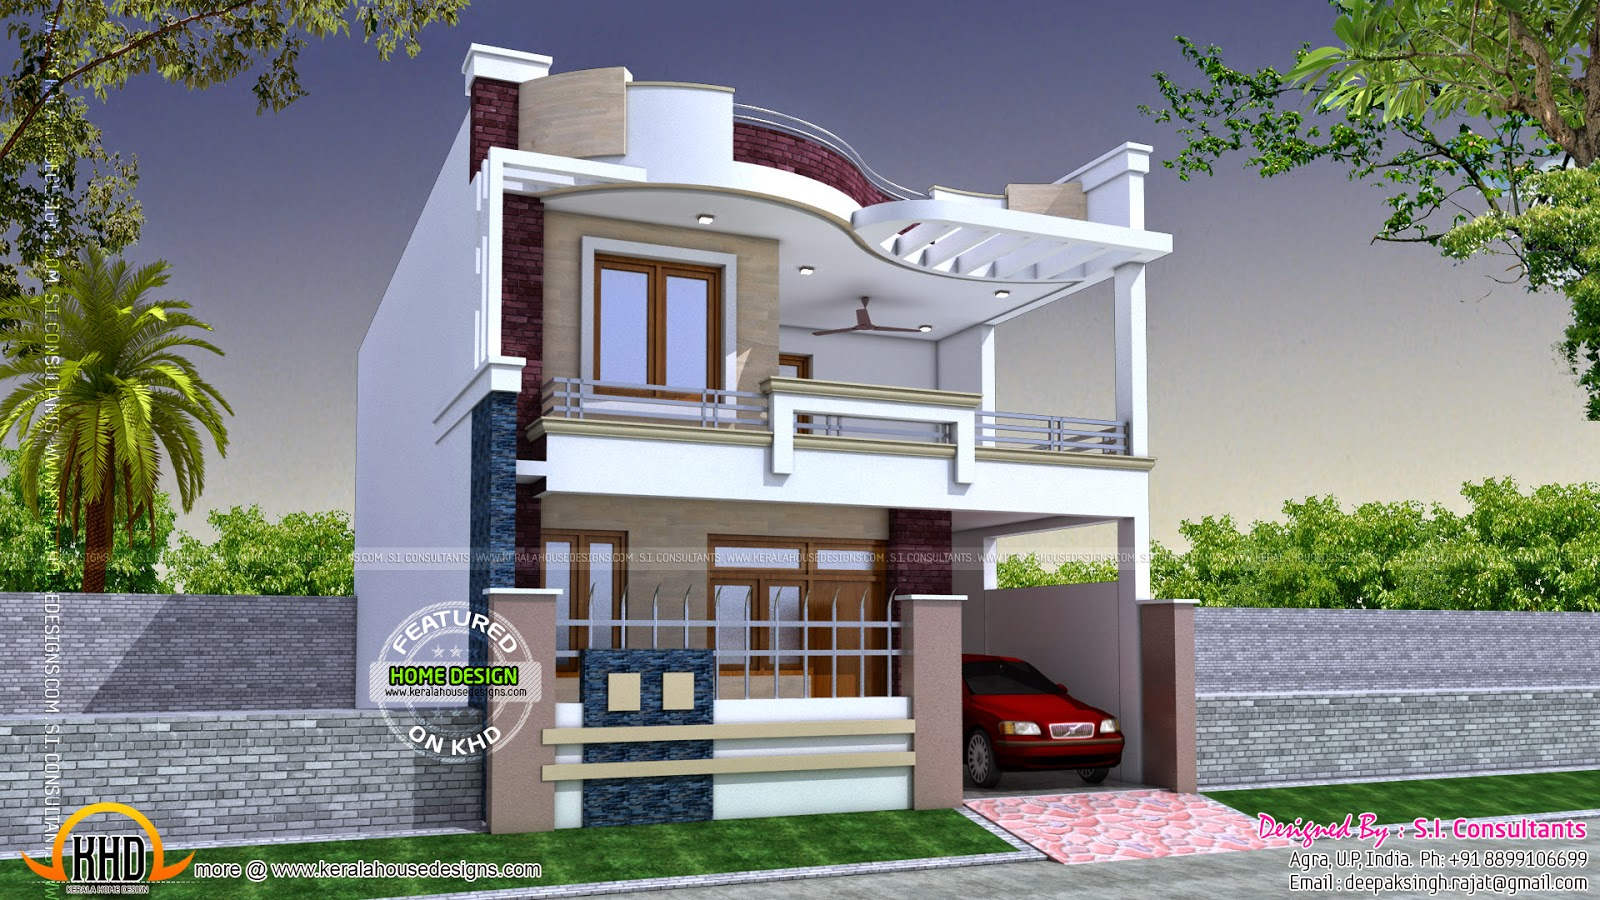 Modern indian home design kerala home design and floor plans for Design duplex house architecture india